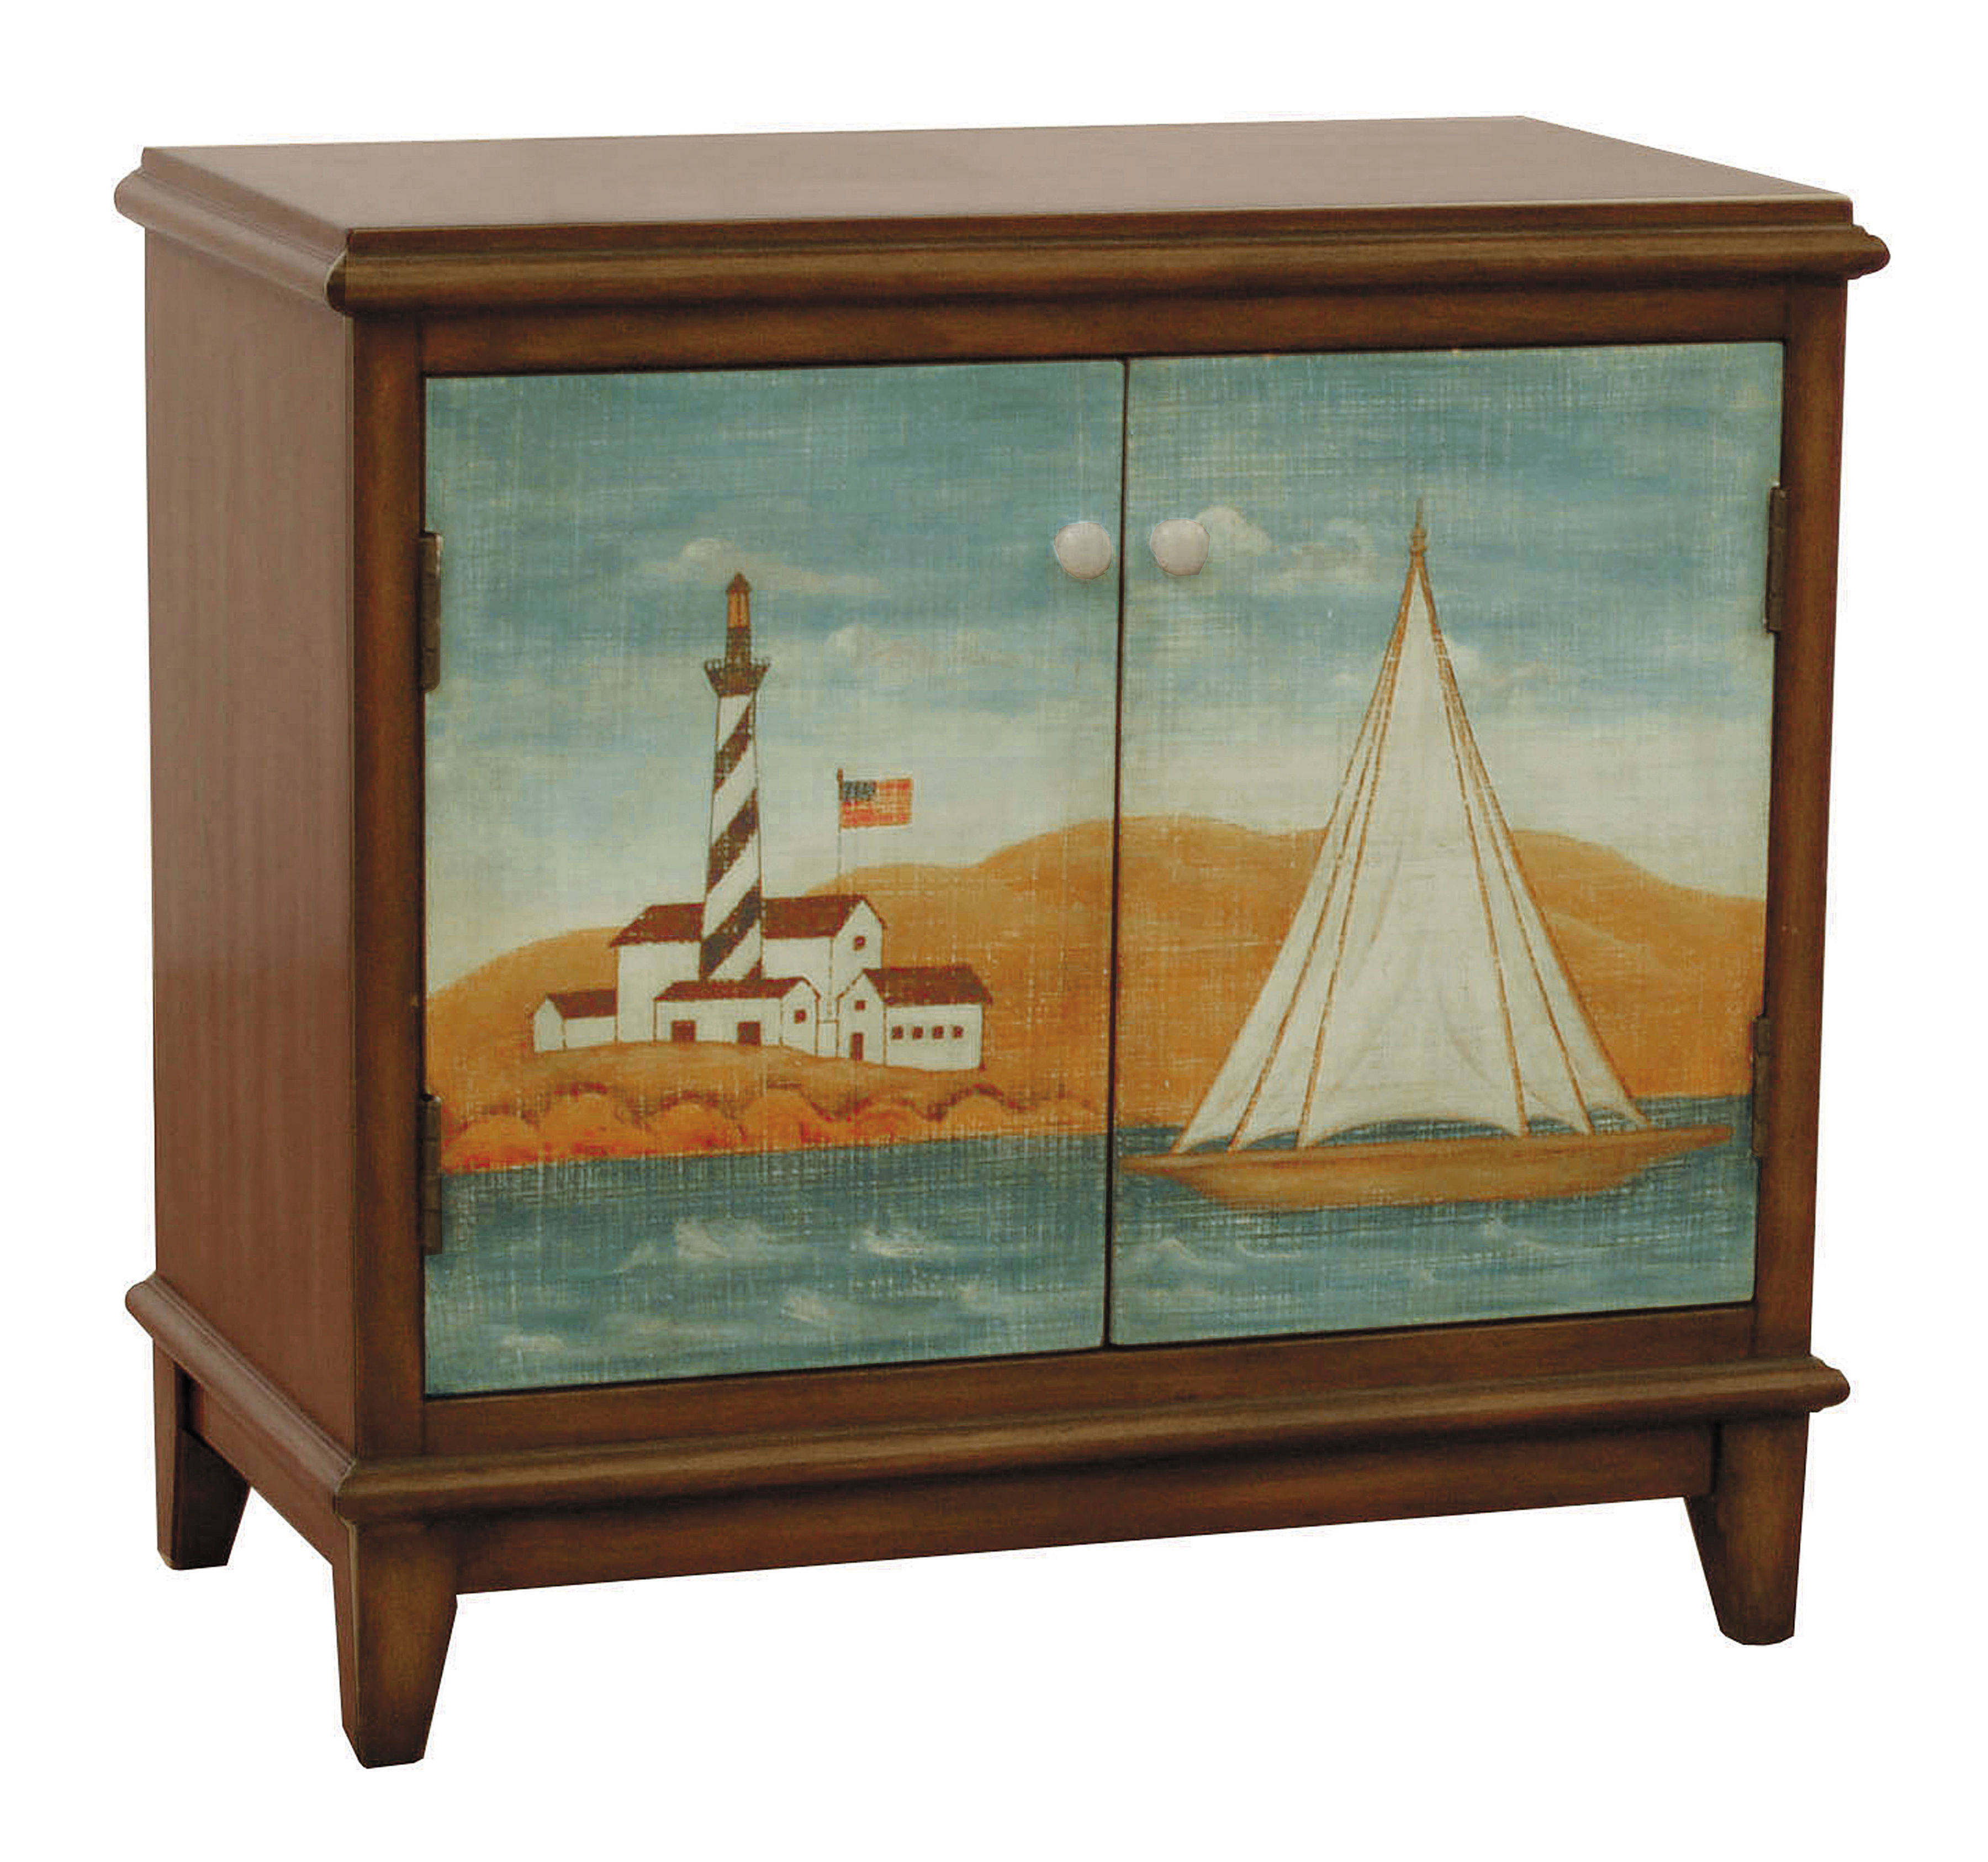 casual brown wood rectangle hand painted accent chest the classy home scc tables chests click enlarge gold color coffee table pedestal legs bent acrylic brass nautical lights